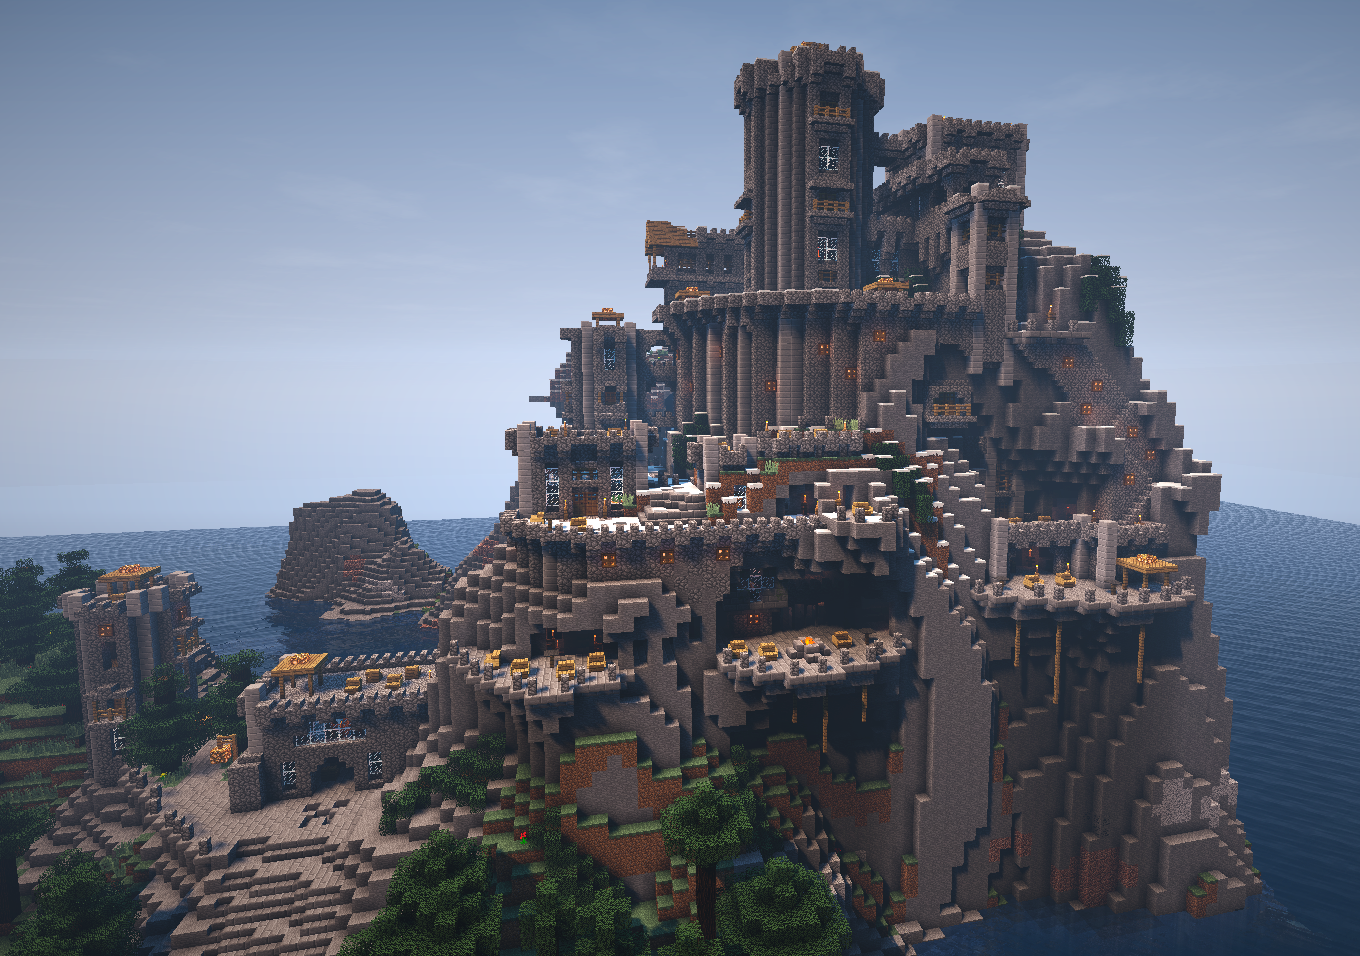 Minecraft Terraced Castle By Trinapple On DeviantArt